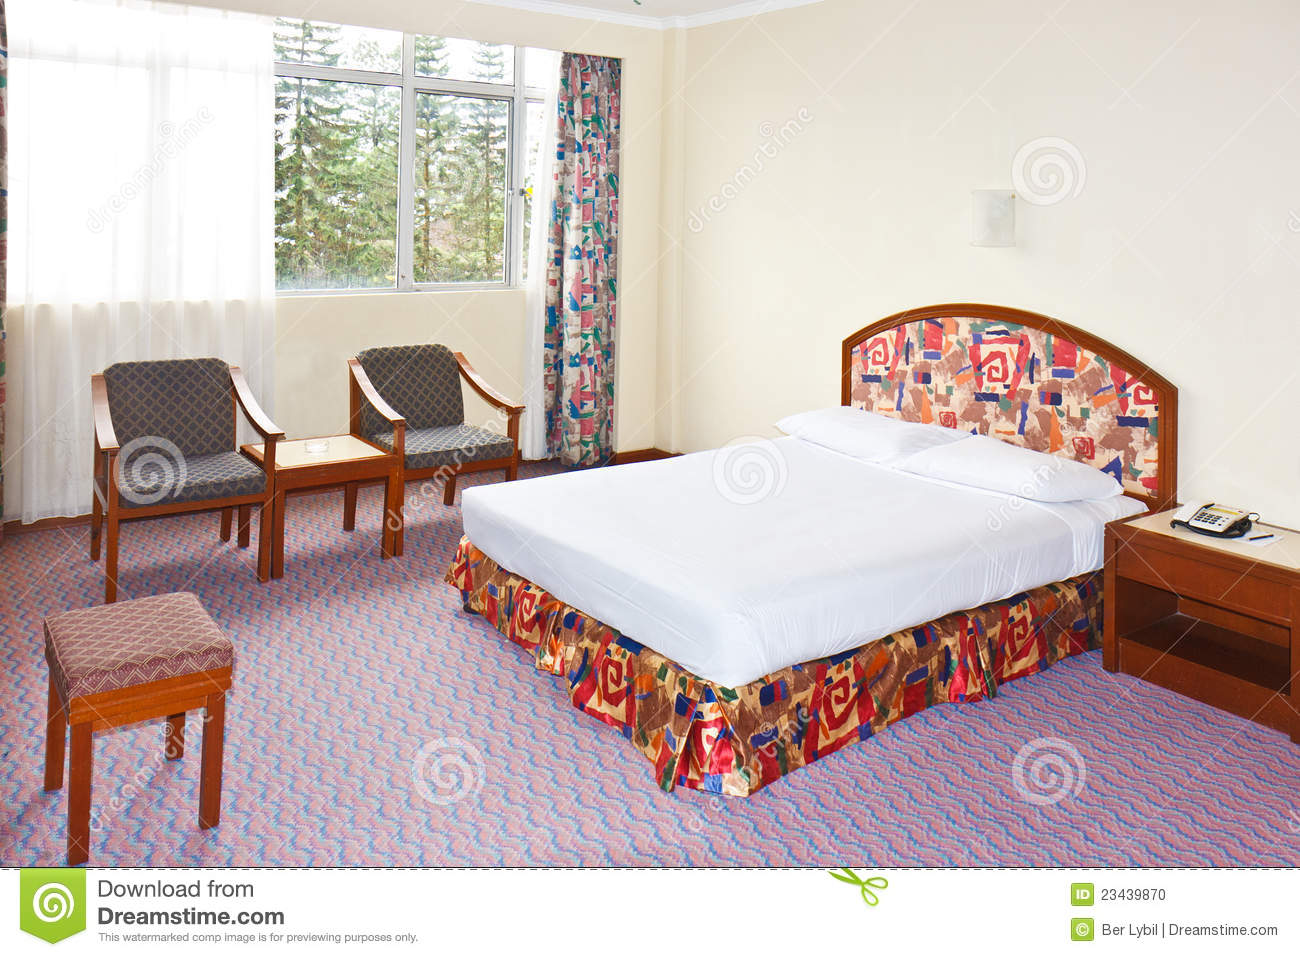 bedroom suites cheap cheap bedroom suites 28 images hotel cheap bedroom cheap 10694